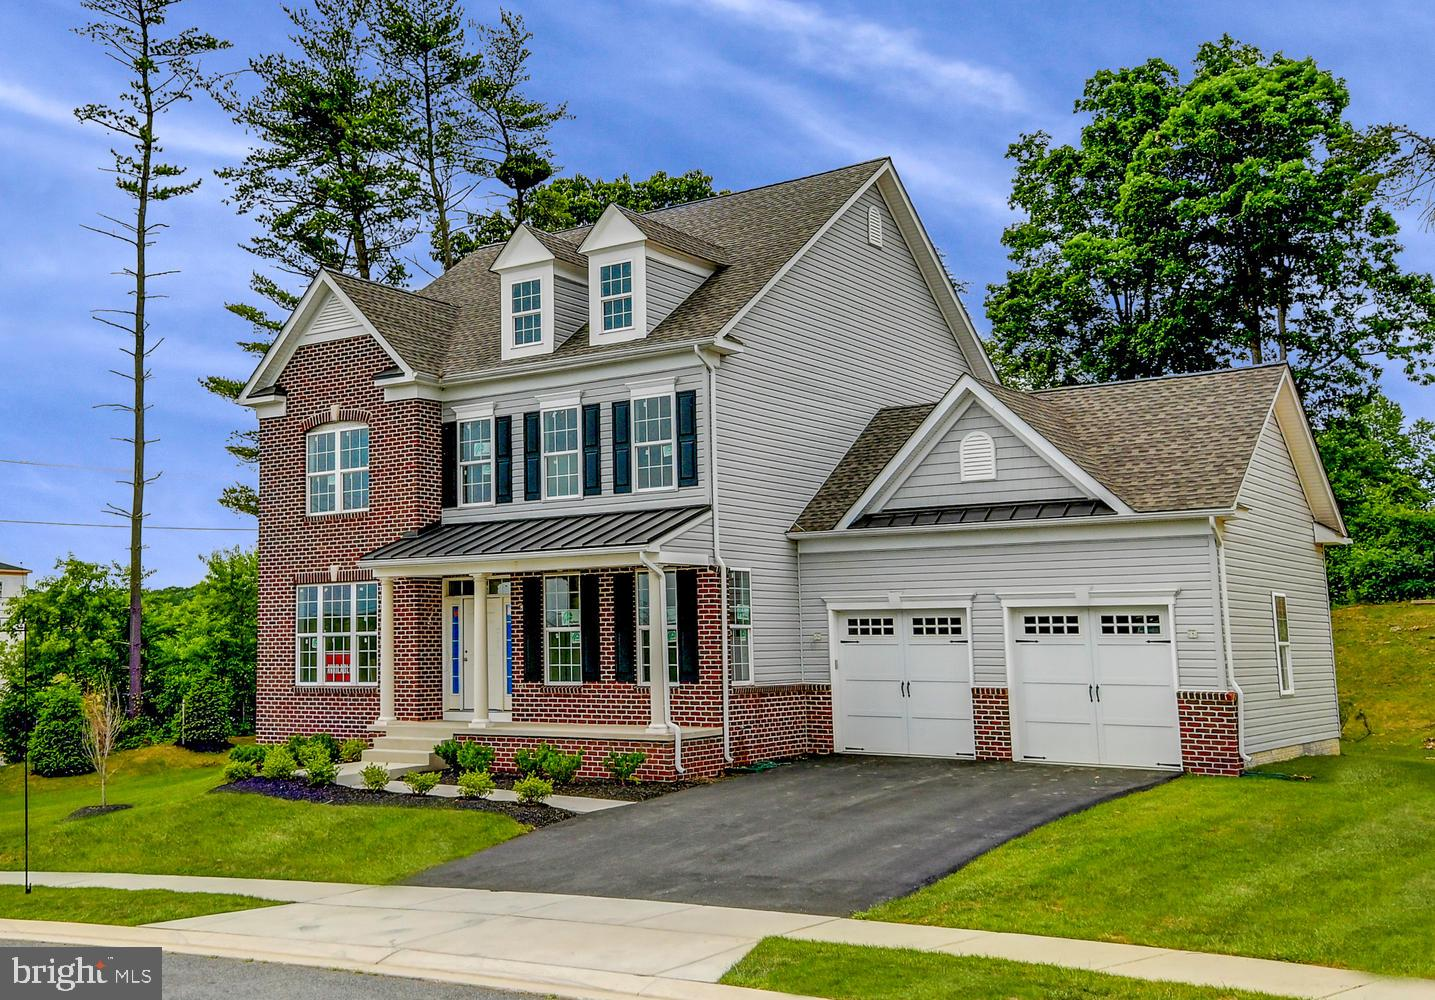 10800 WHITE TRILLIUM ROAD, PERRY HALL, MD 21128